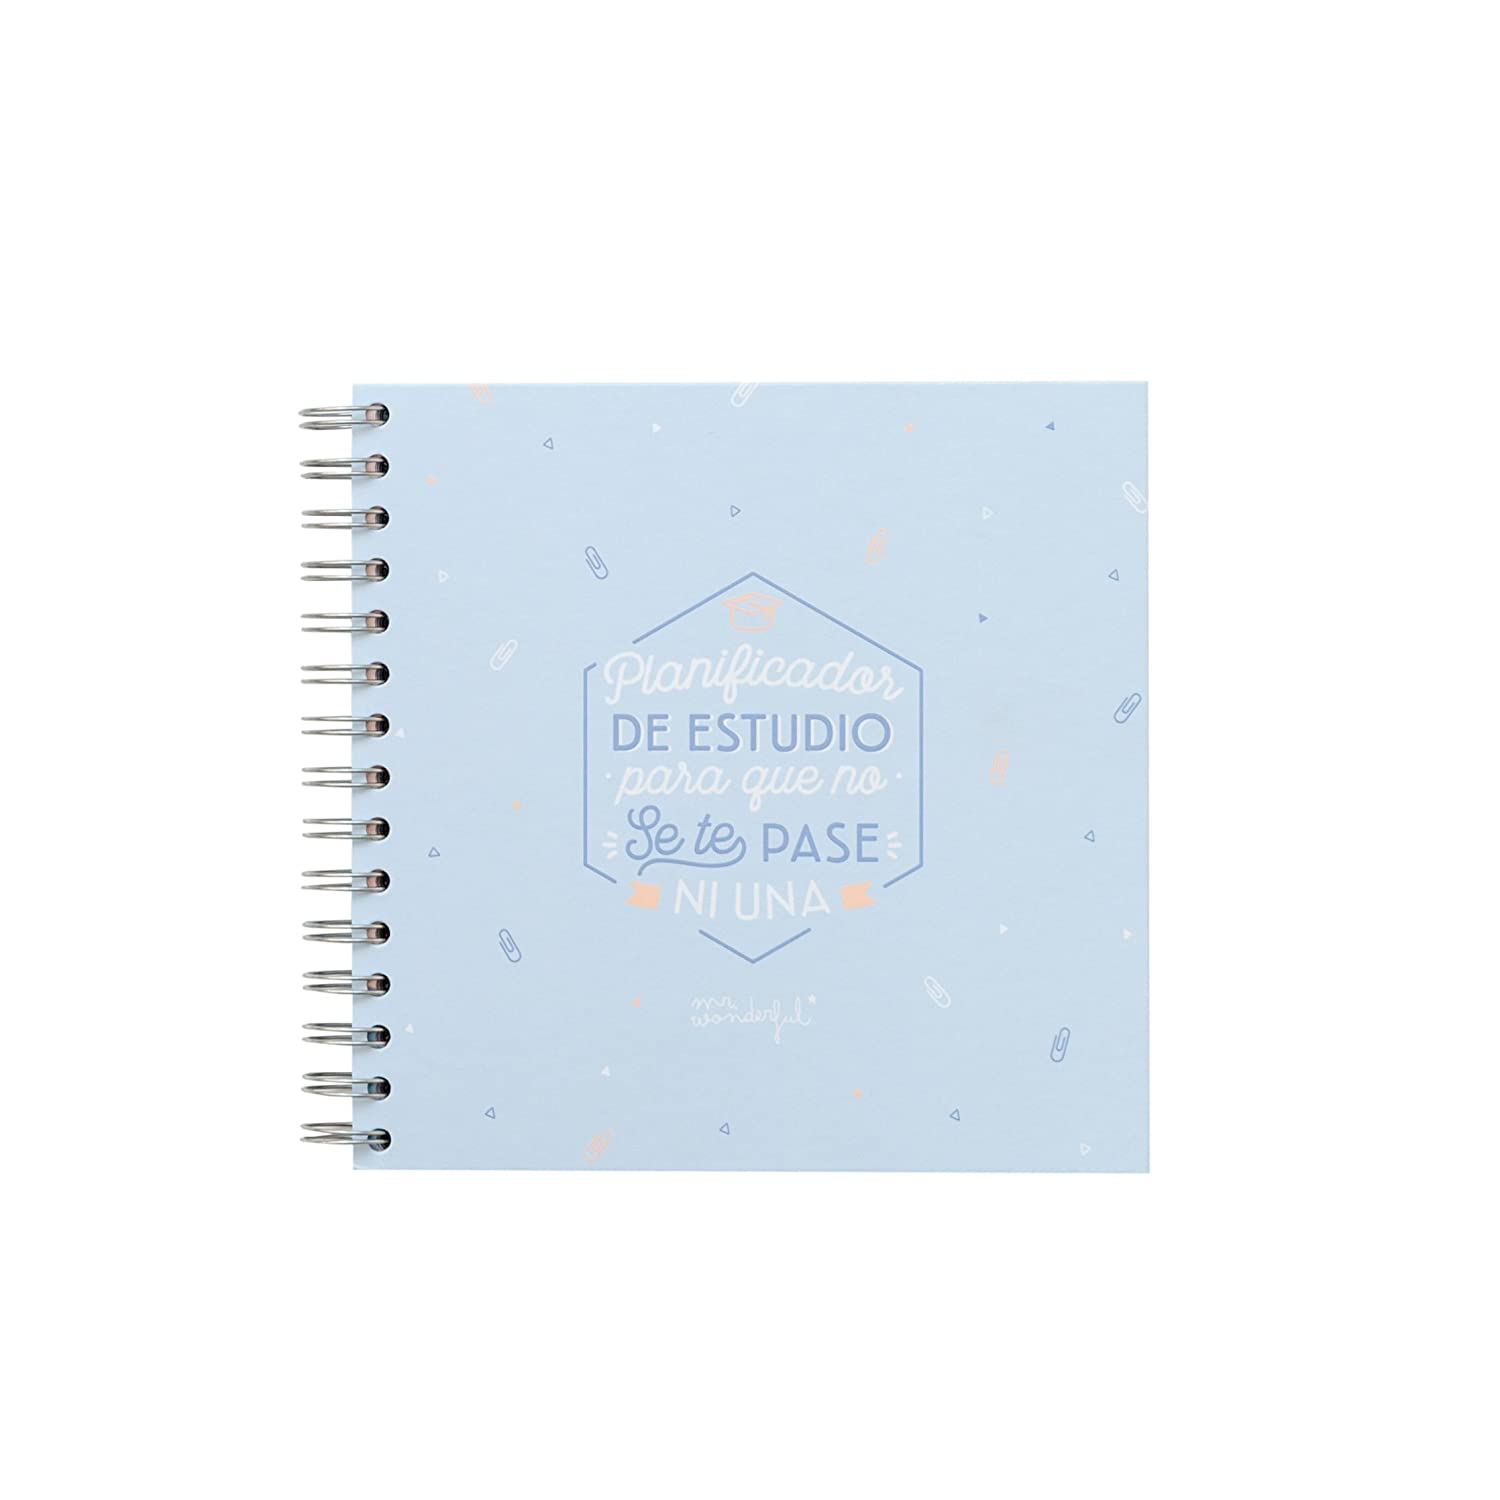 Amazon.com : Mr. Wonderful woa09062es - Study Planner Mr. Wonderful for That You Will not Pass Nothing : Office Products